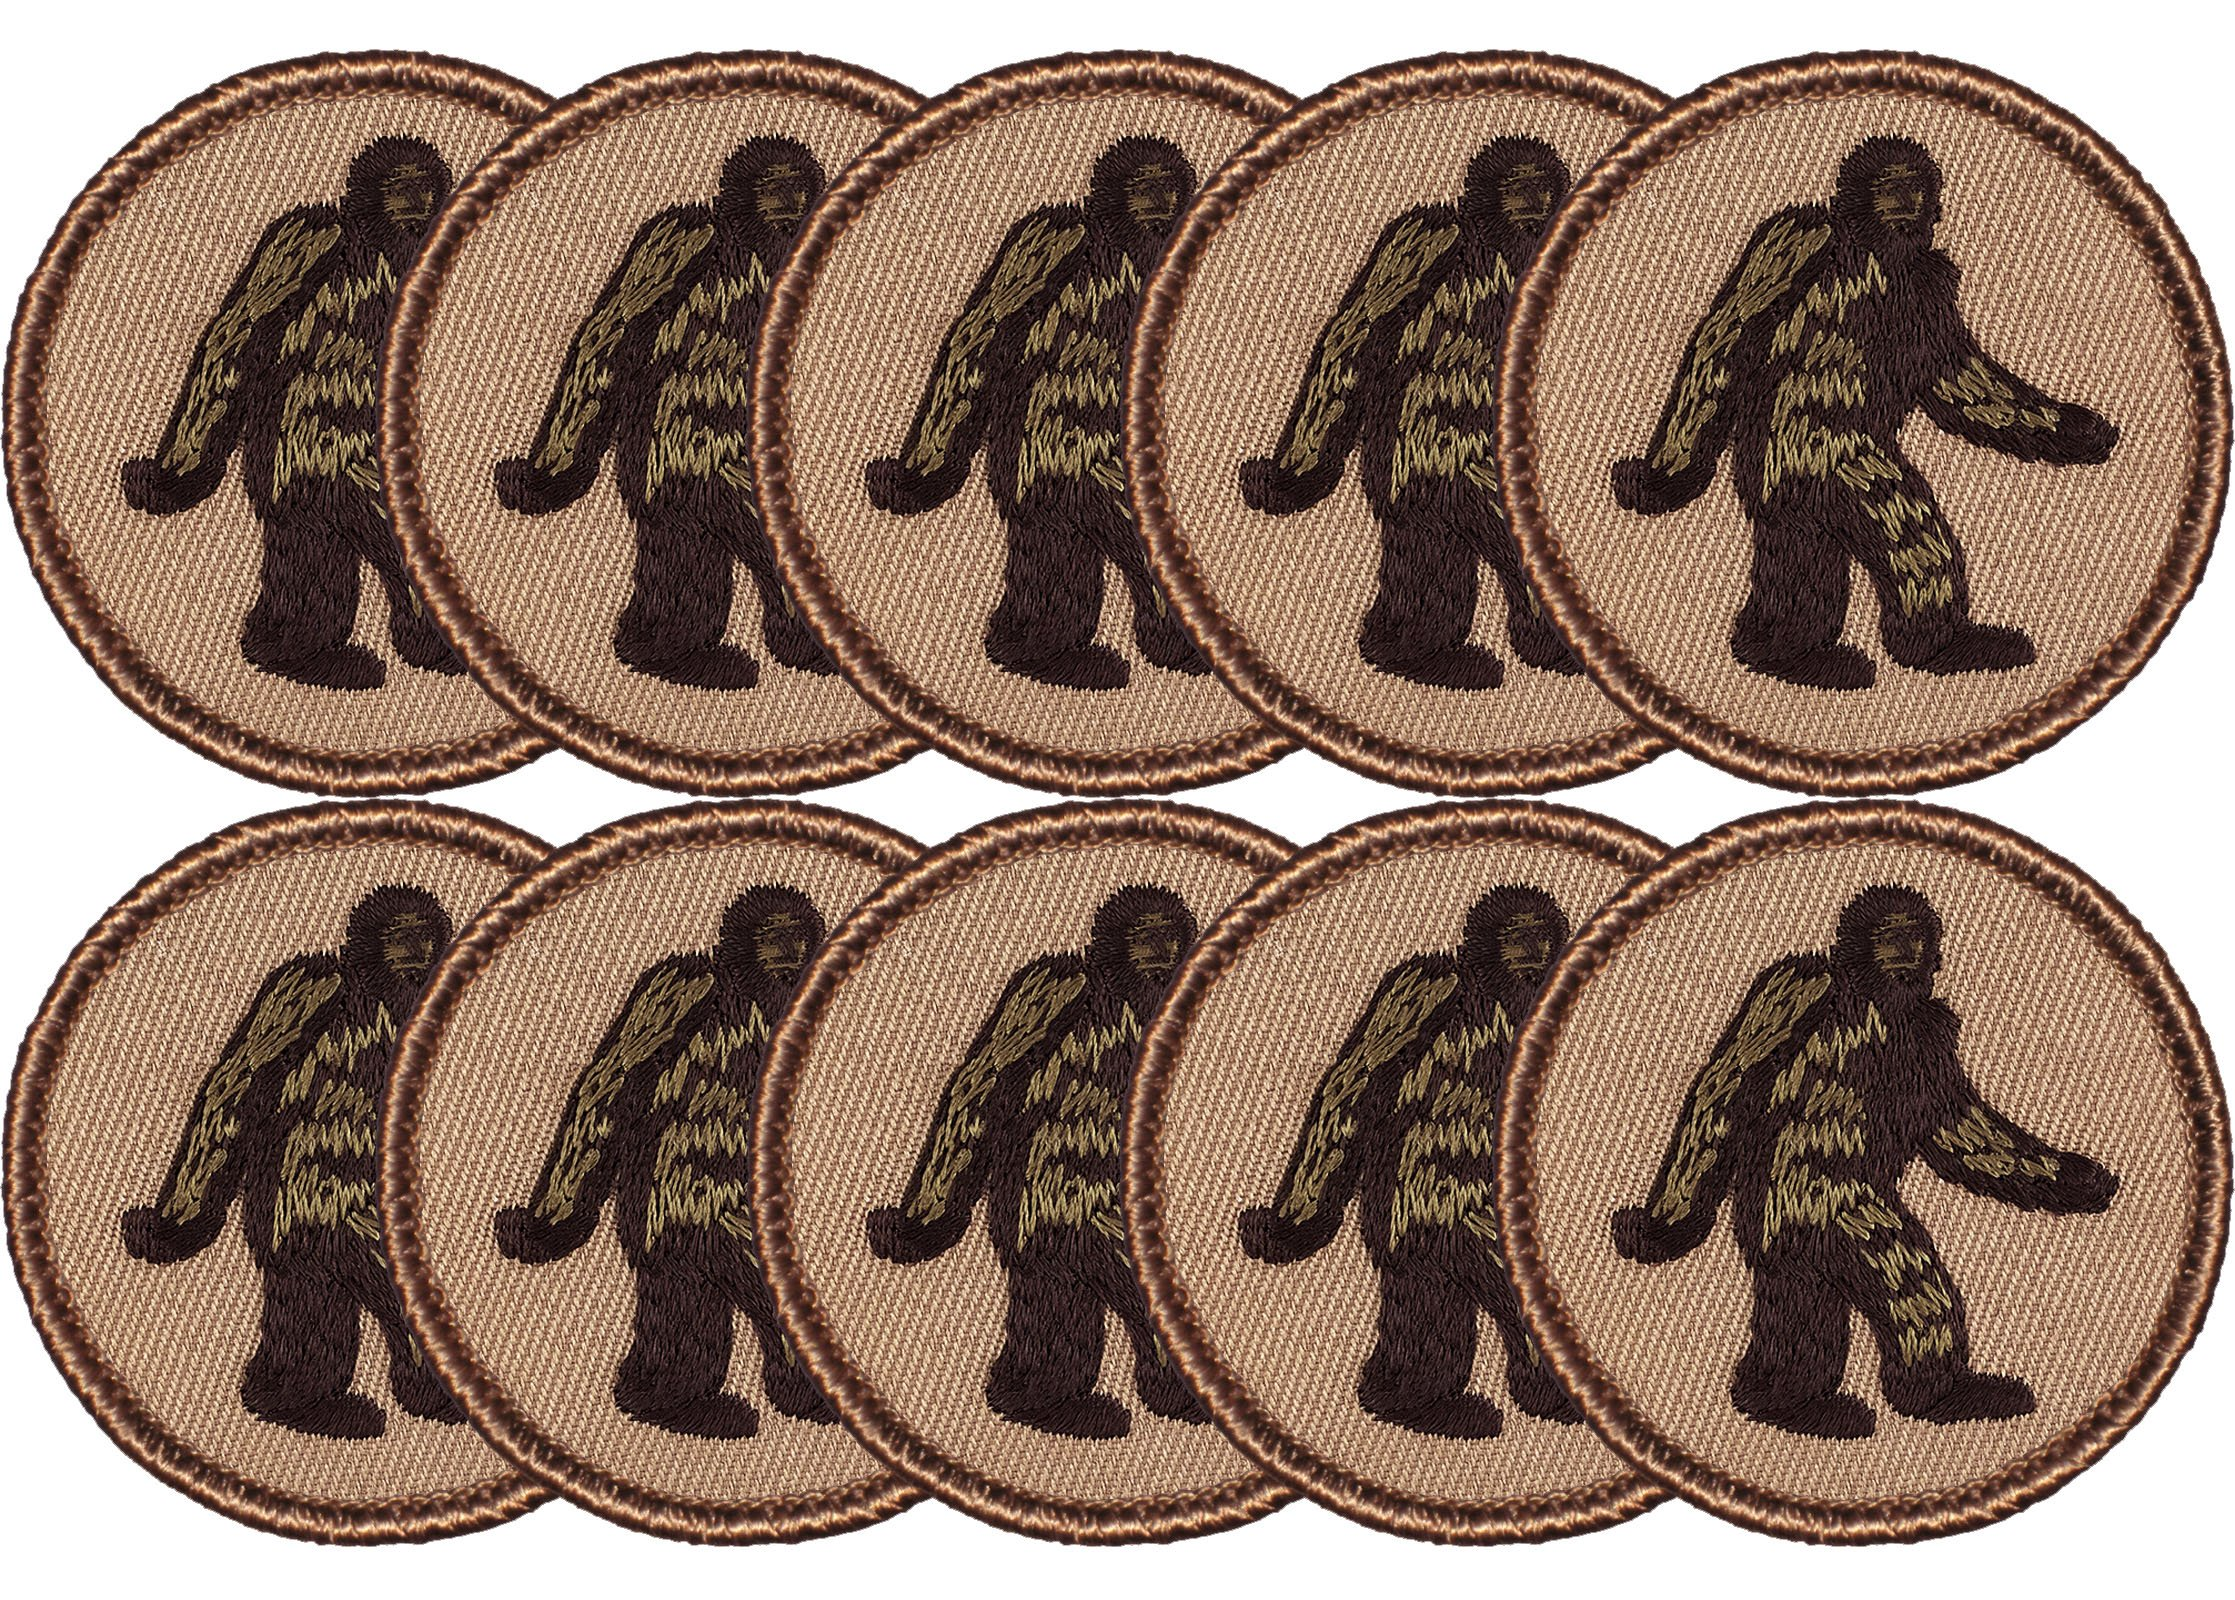 Bigfoot Patrol Patch - 2'' Diameter Round Embroidered Patch (10 Pack) by Patchtown